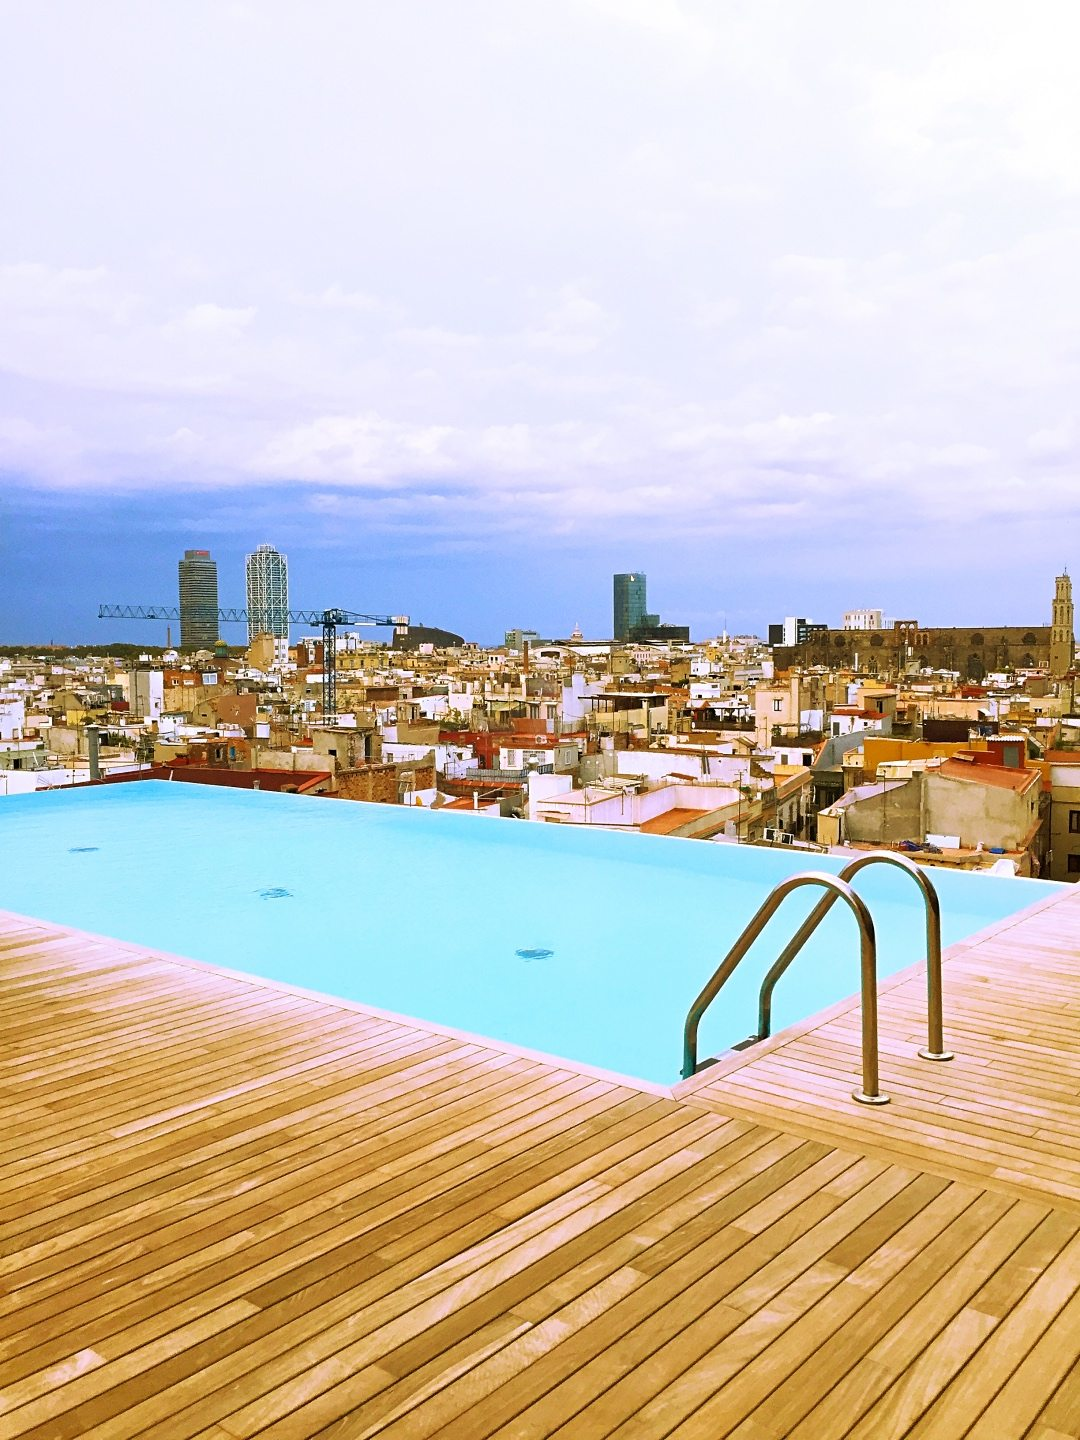 A picture of the infinity pool with a view of the city